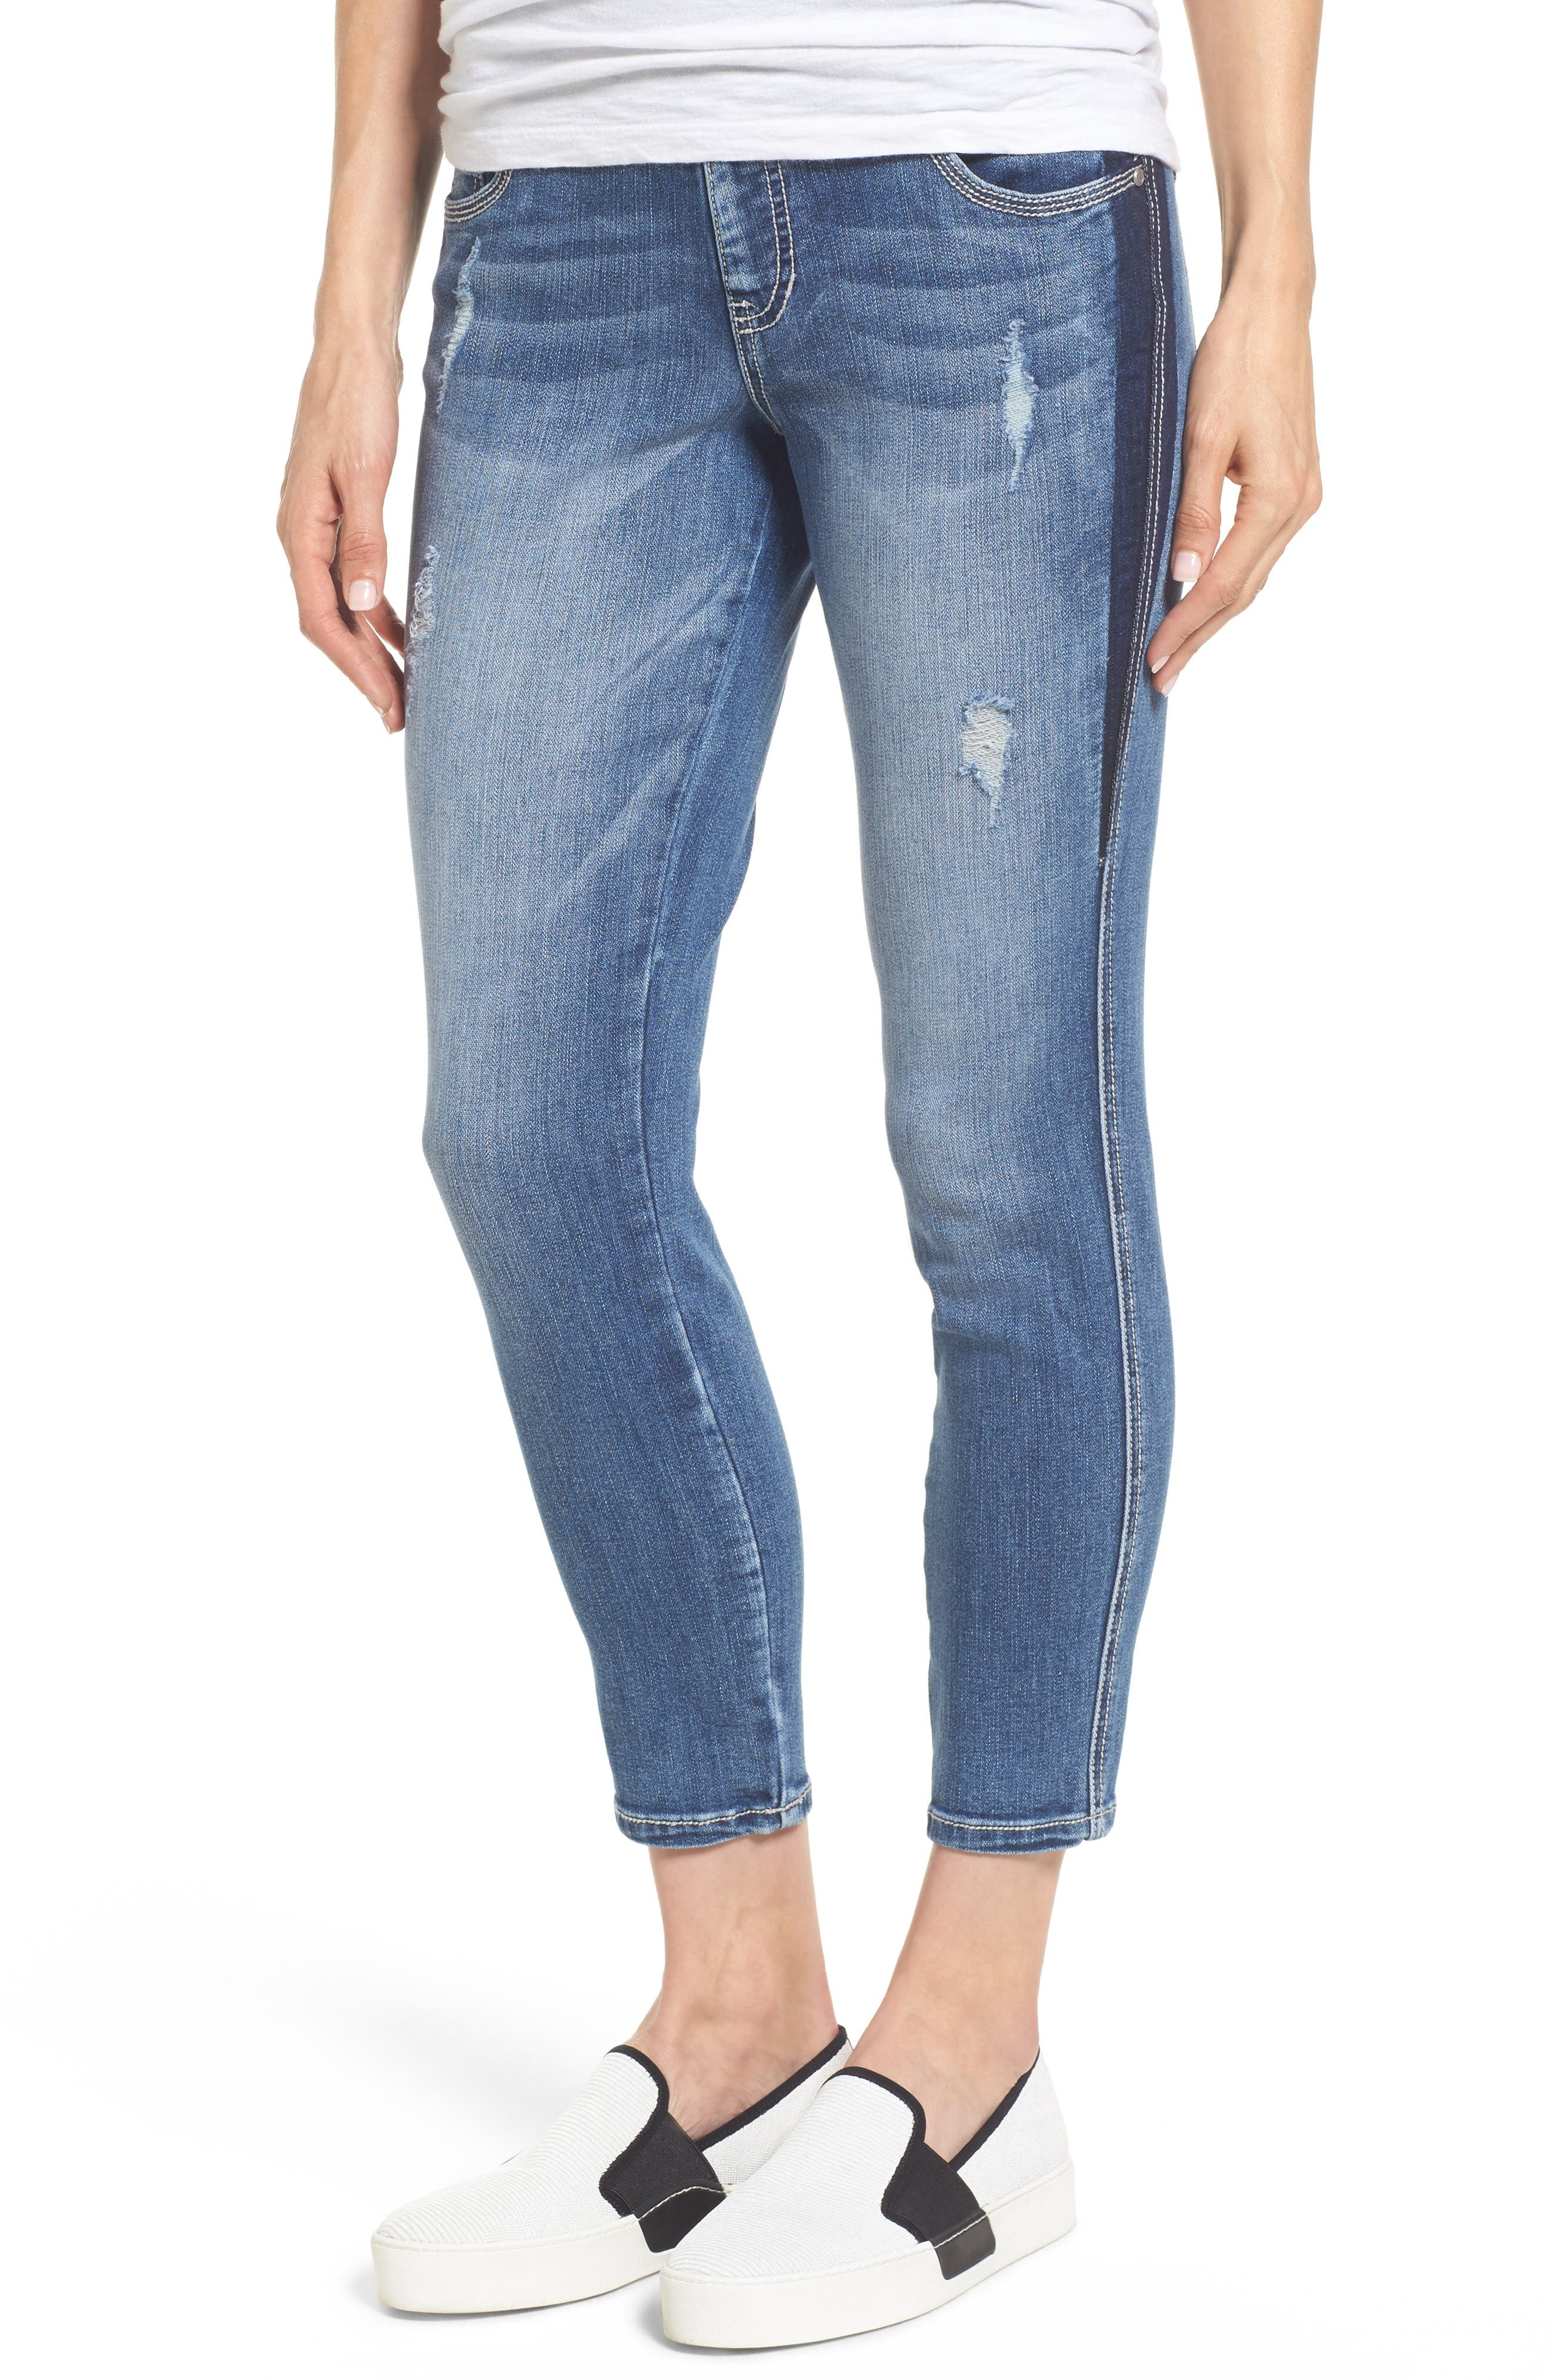 Nora Marta Stretch Skinny Jeans,                             Main thumbnail 1, color,                             420